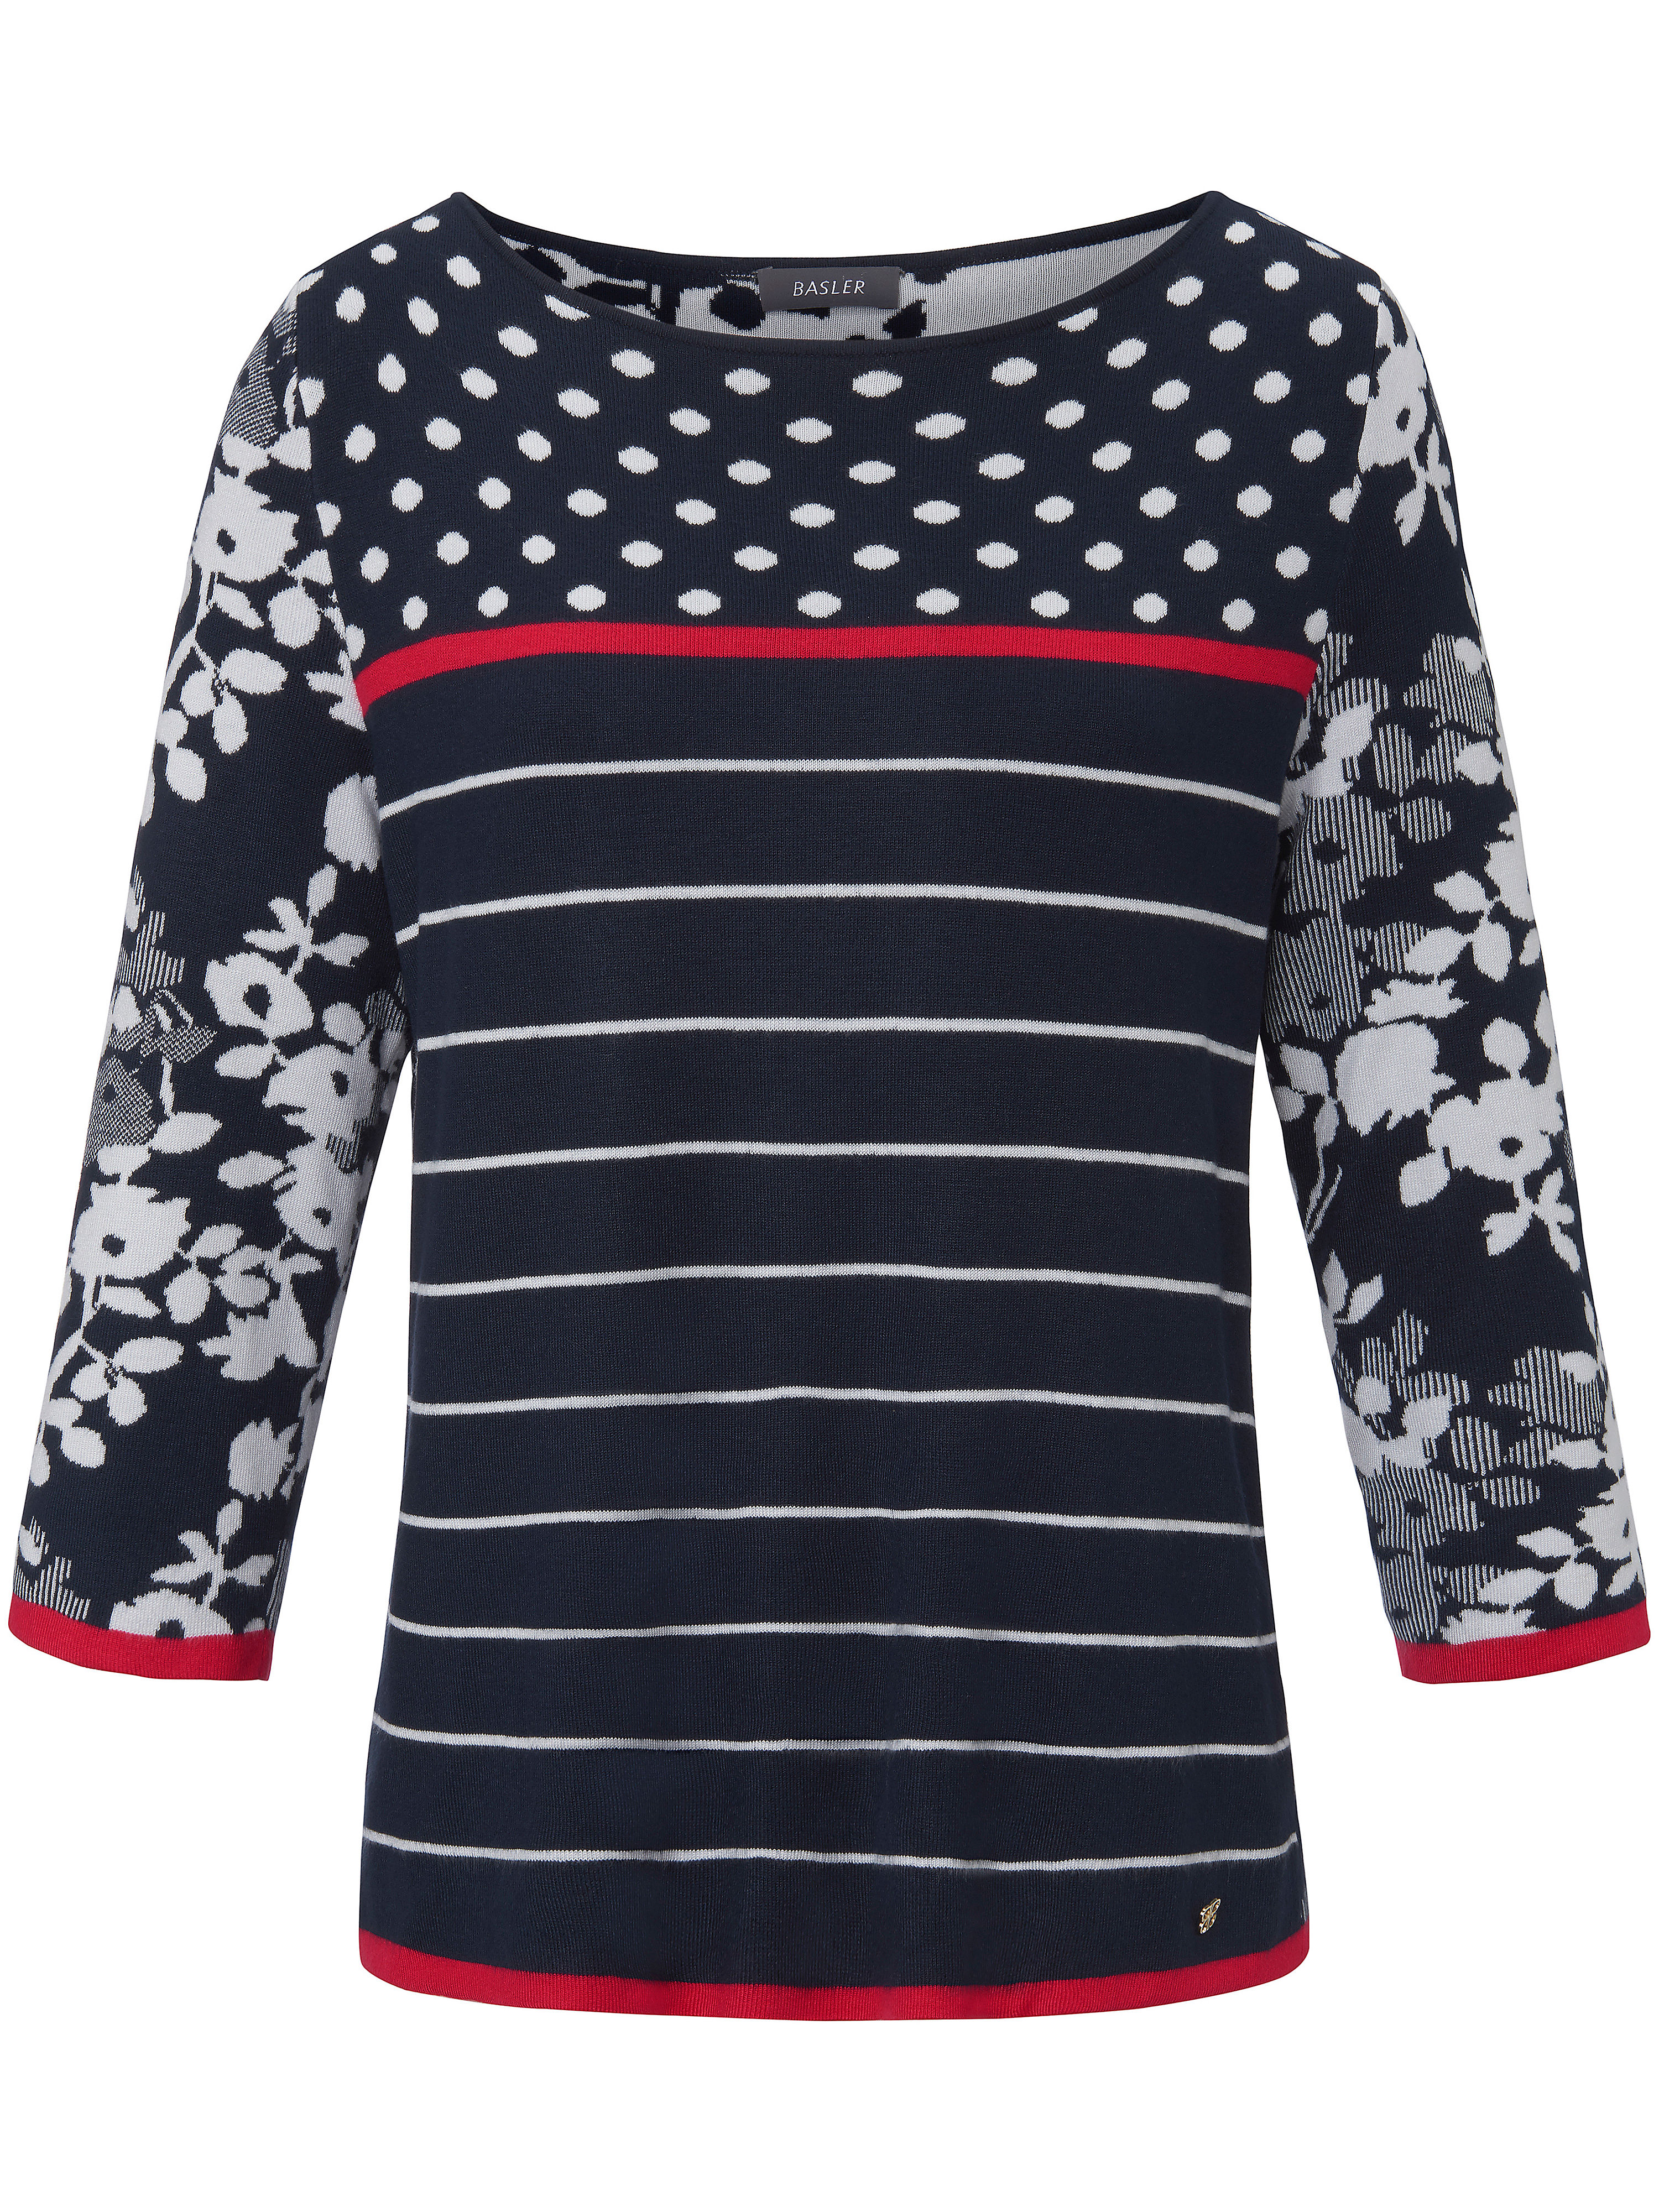 Le pull à manches 3/4  Basler multicolore taille 54